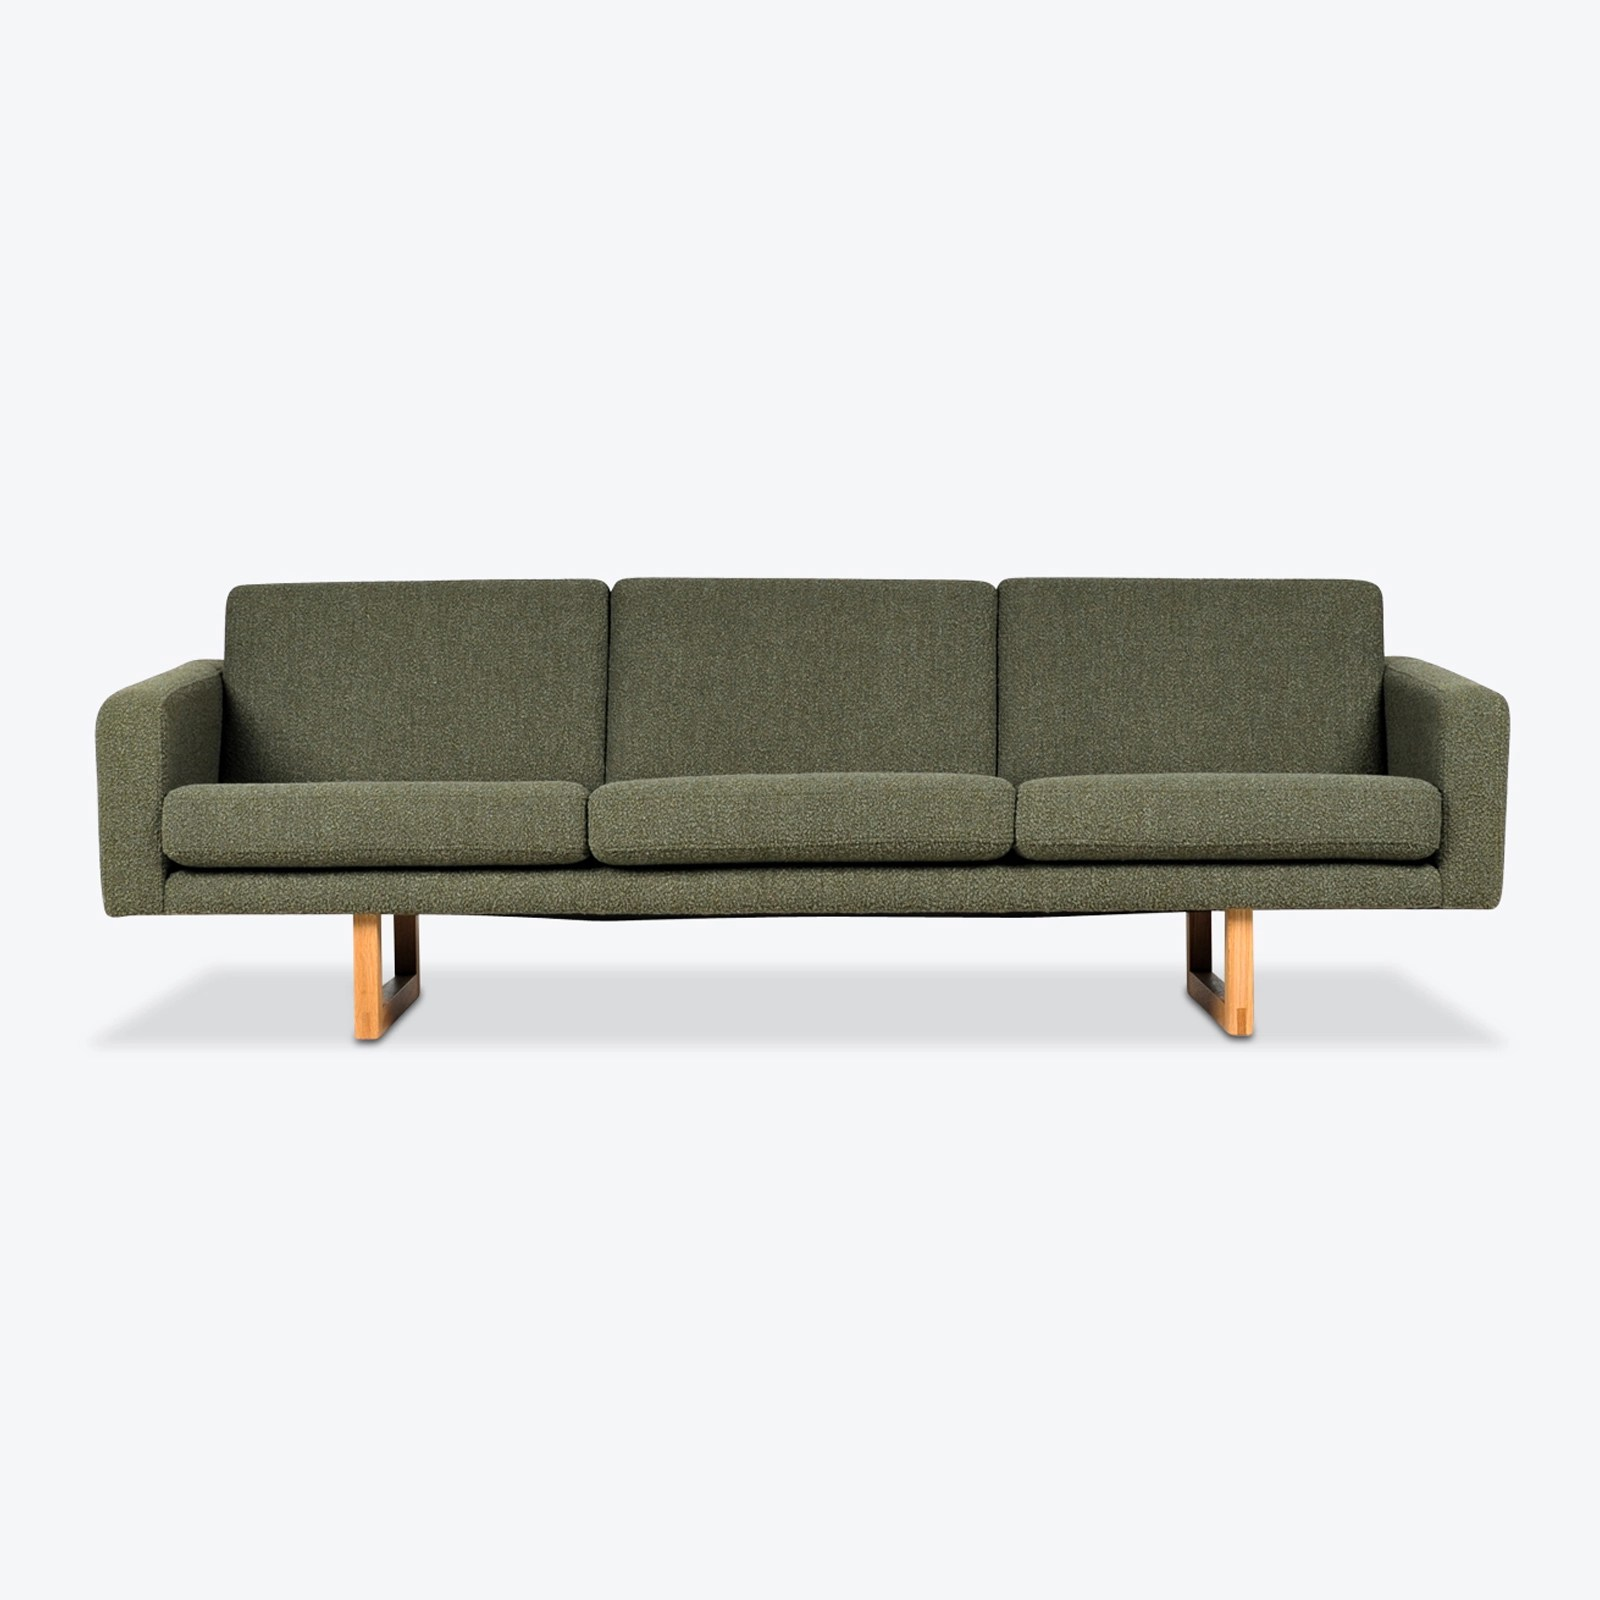 innovation sofa bed gumtree ralph lauren macy s modern australia awesome home